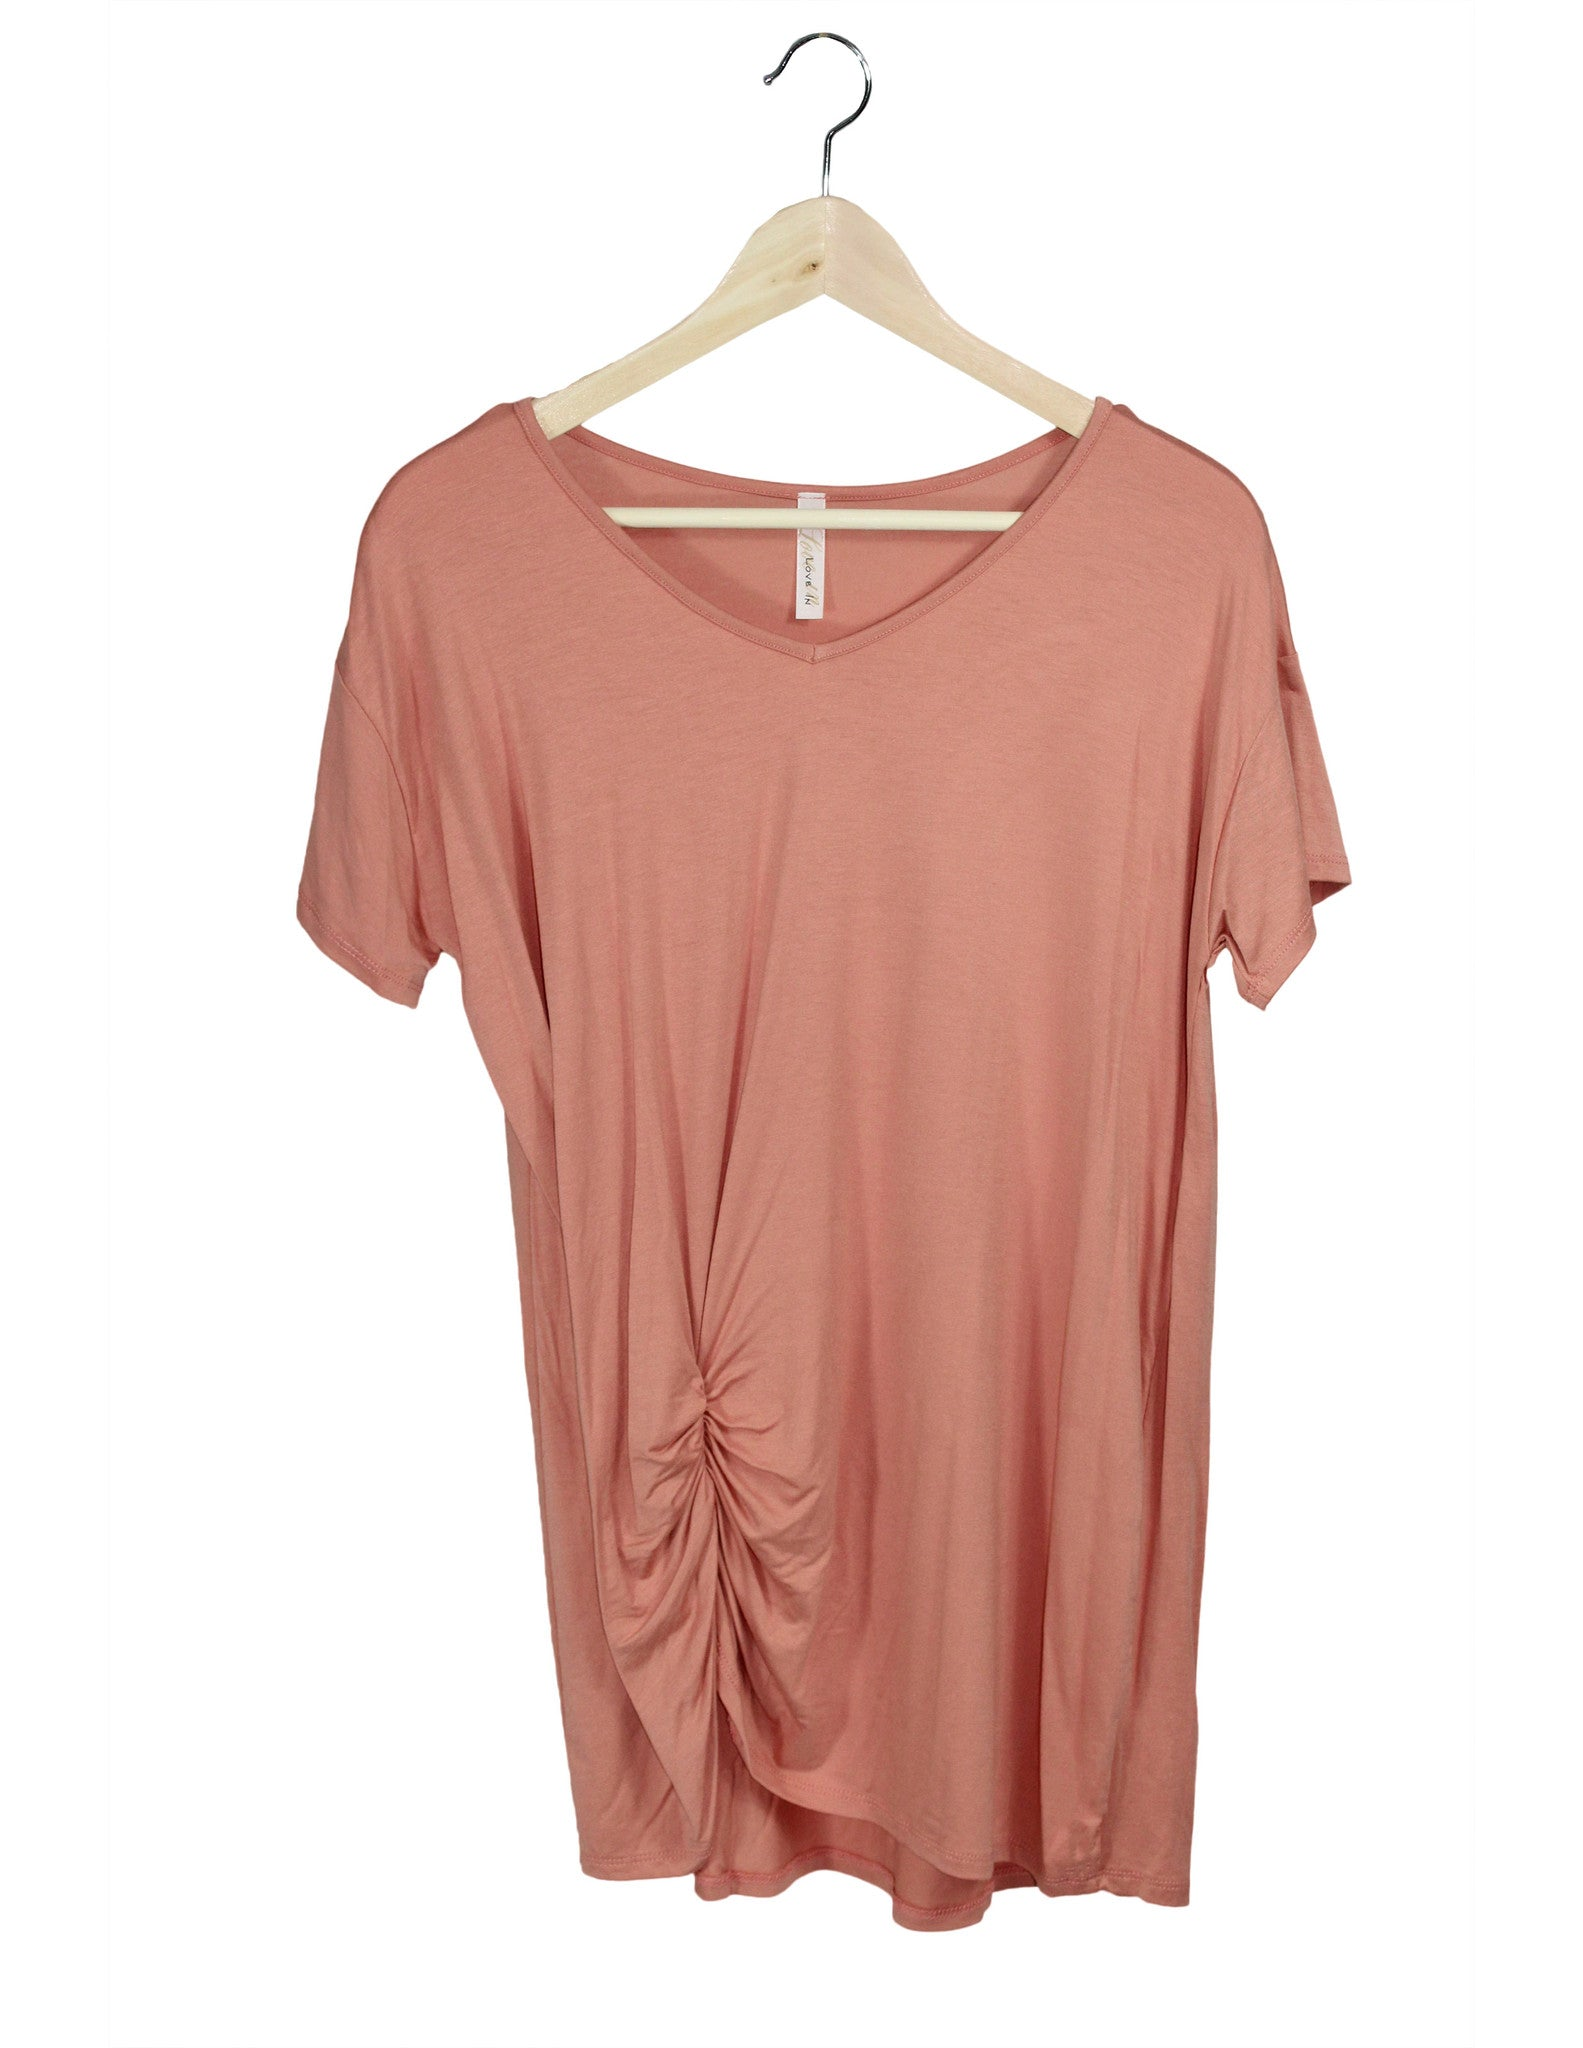 Coral Tie-Top / Ethical Fashion